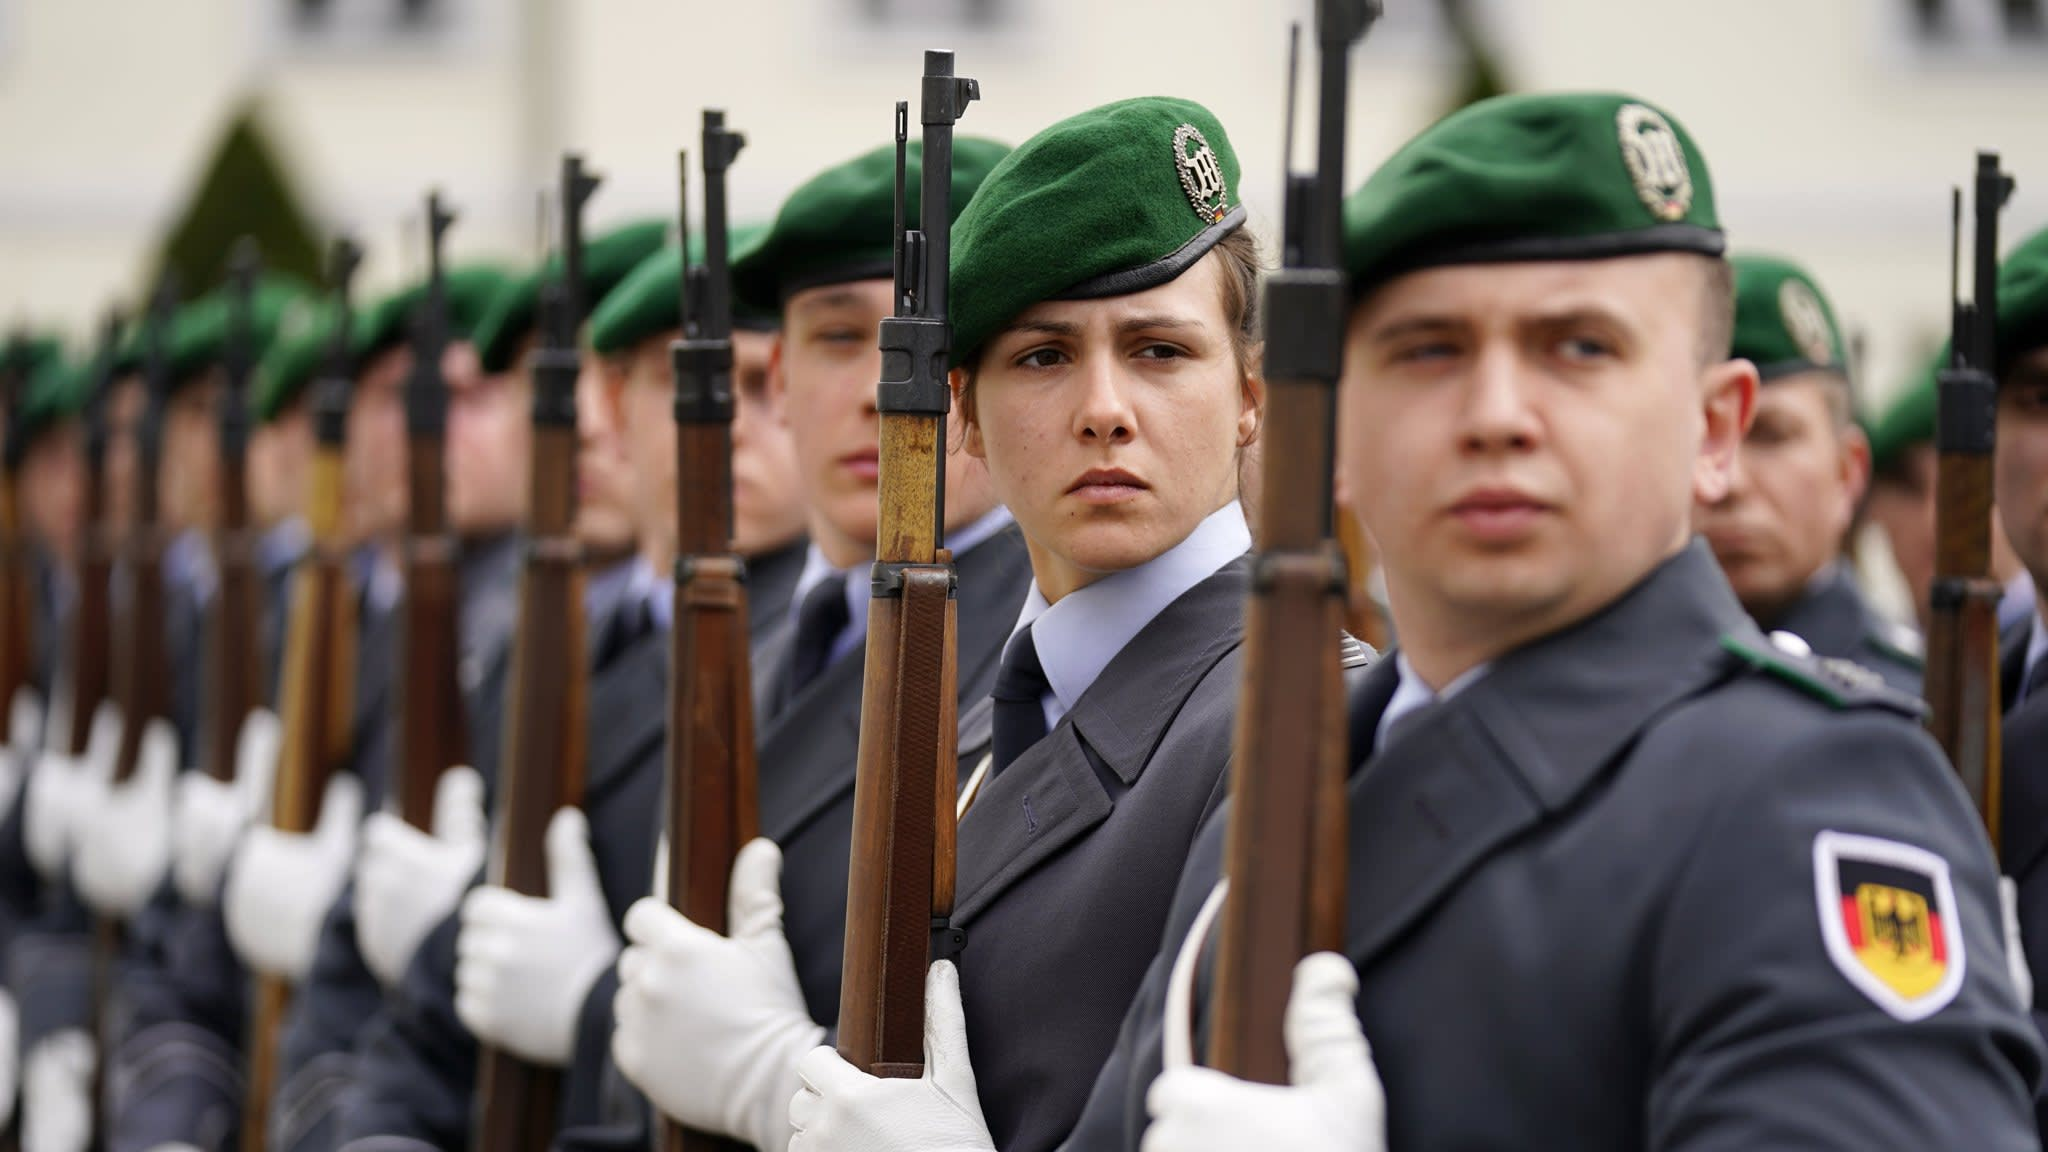 Germany's low defence spending weakens Nato | Financial Times